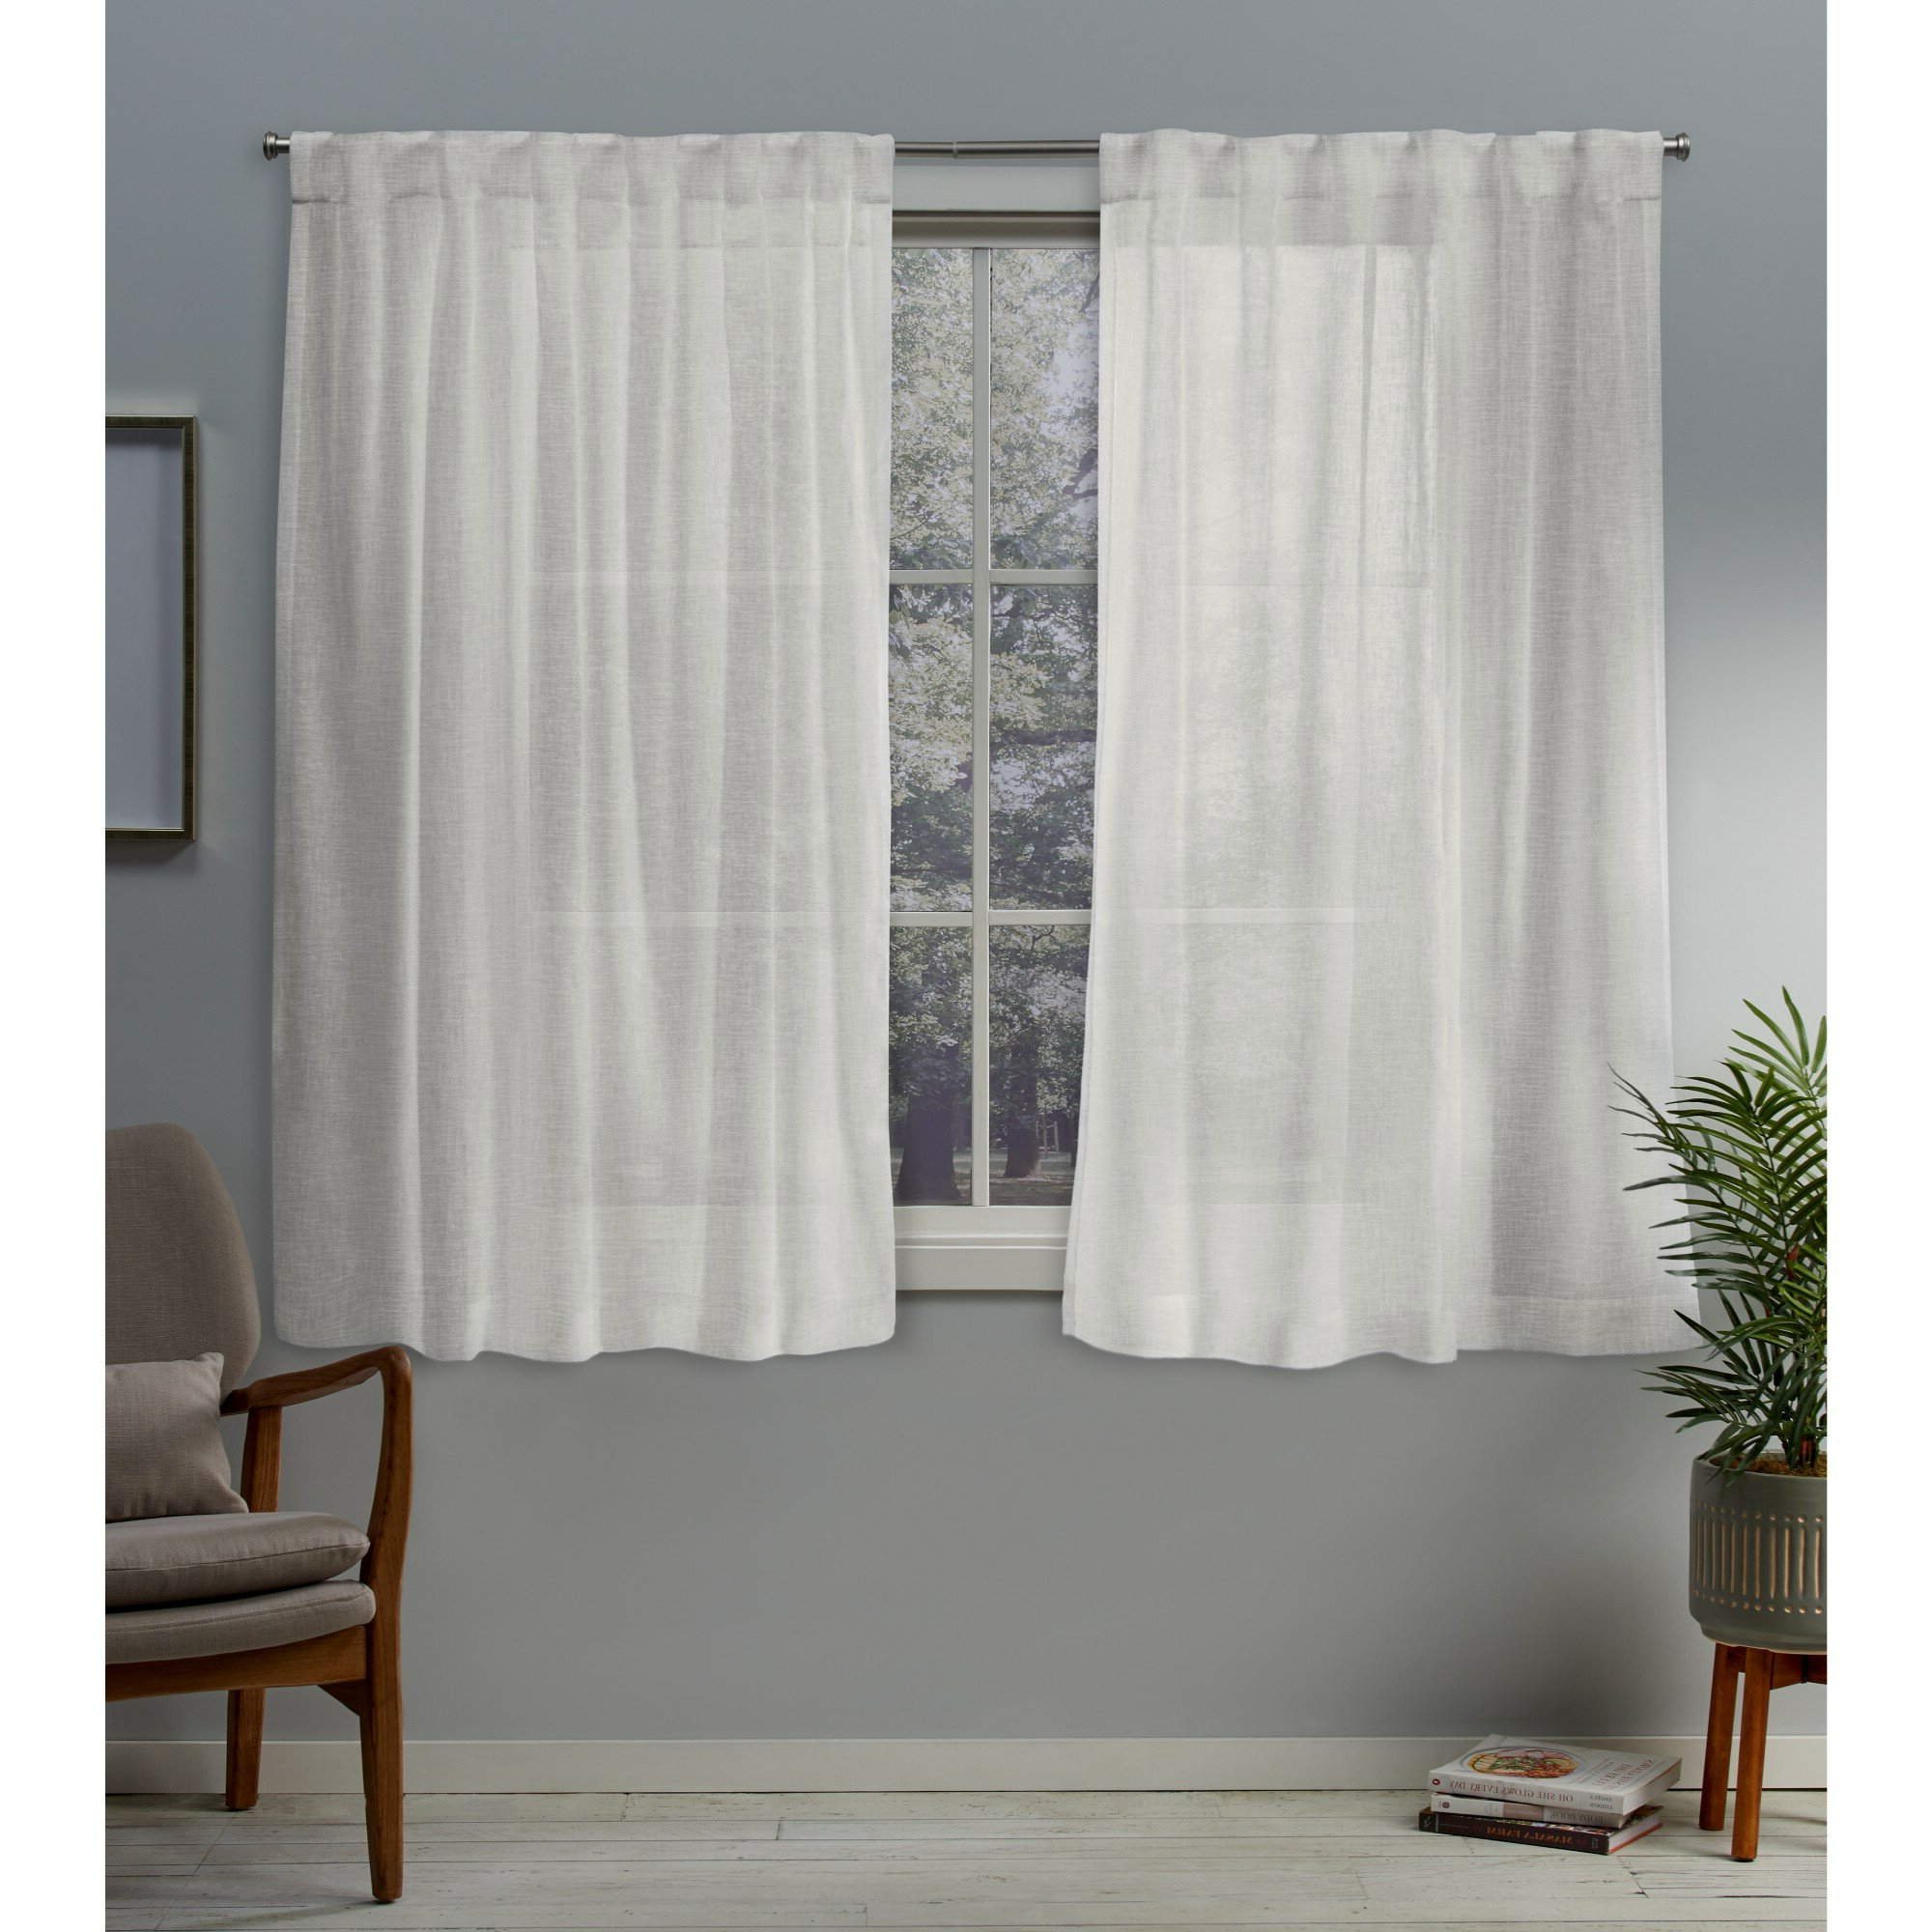 Well Liked Oakdale Textured Linen Sheer Grommet Top Curtain Panel Pairs Intended For Callanan Solid Sheer Pinch Pleat Panel Pair (View 20 of 20)